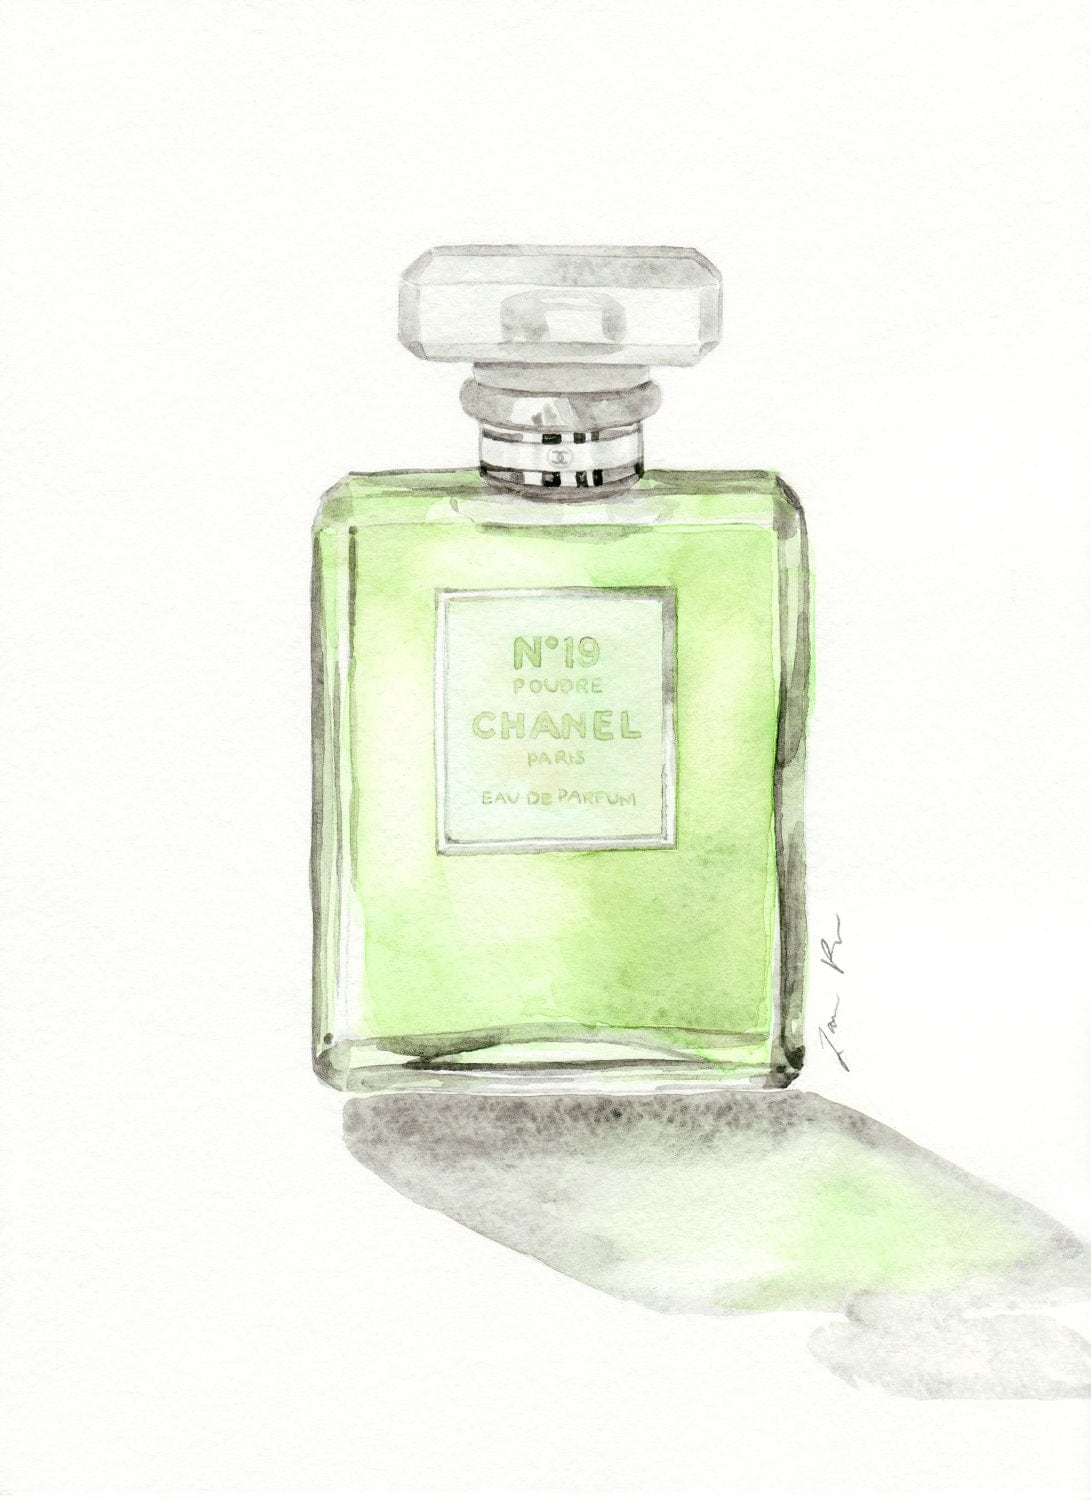 chanel perfume bottle no 19 glass original watercolor 9 x. Black Bedroom Furniture Sets. Home Design Ideas